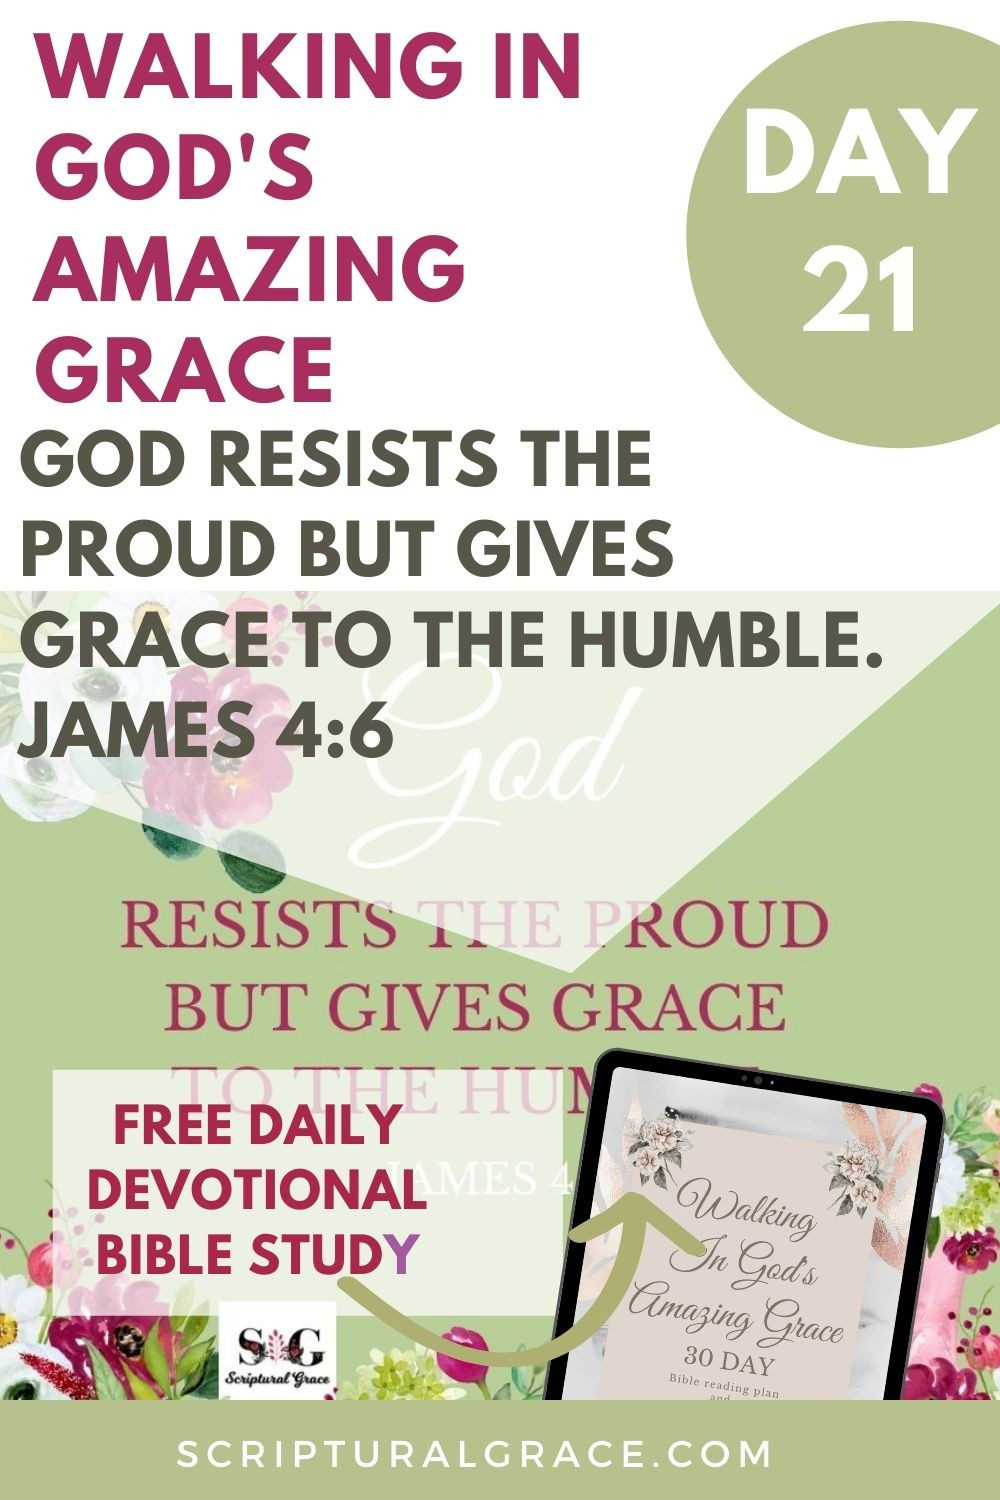 God resists the proud but gives grace to the humble James 4:6 devotional bible study with free prayer journal